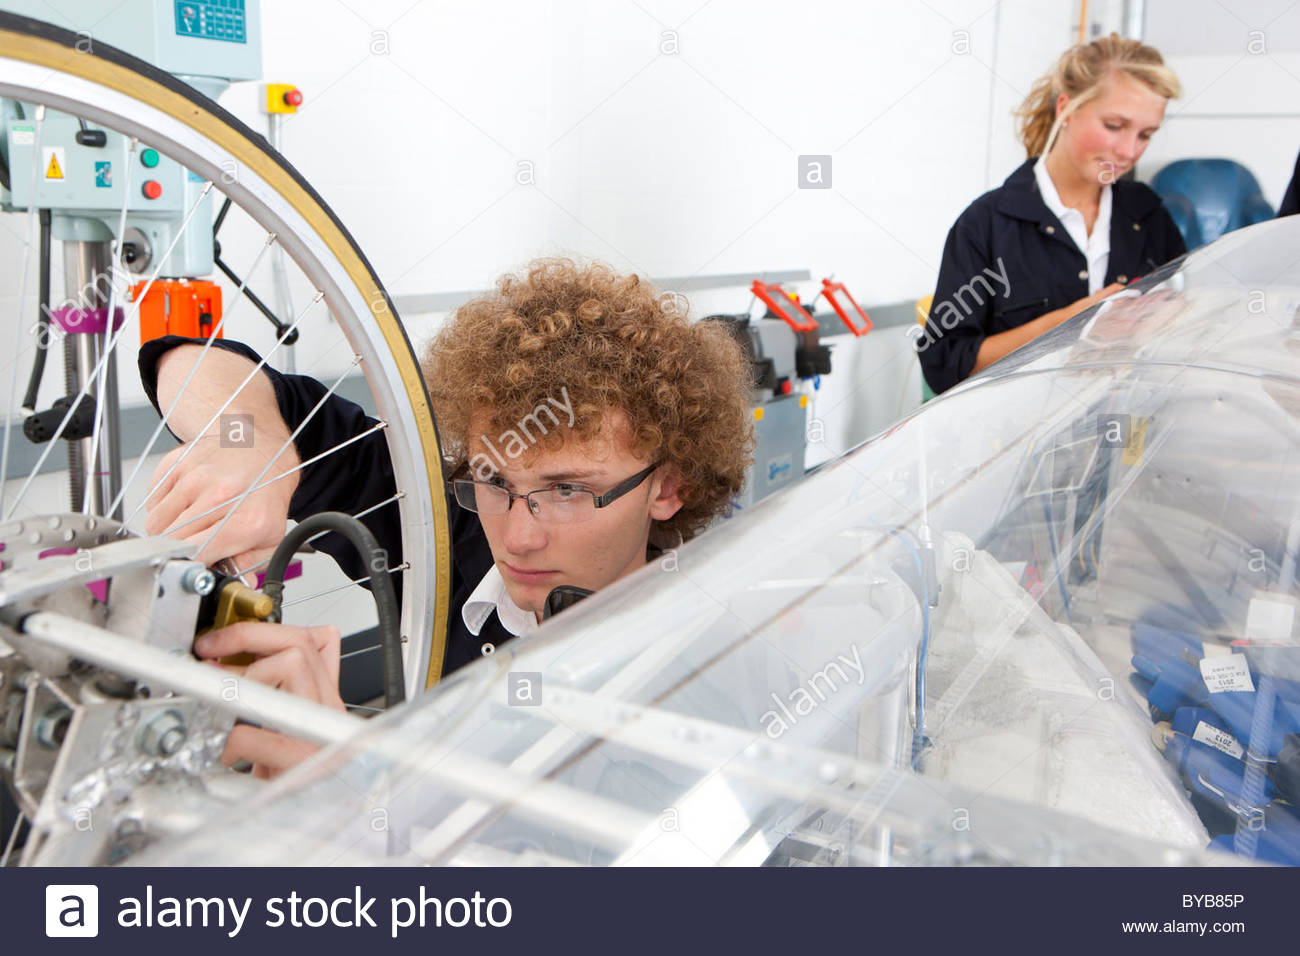 Students constructing electric vehicle prototype in vocational school - Stock Image